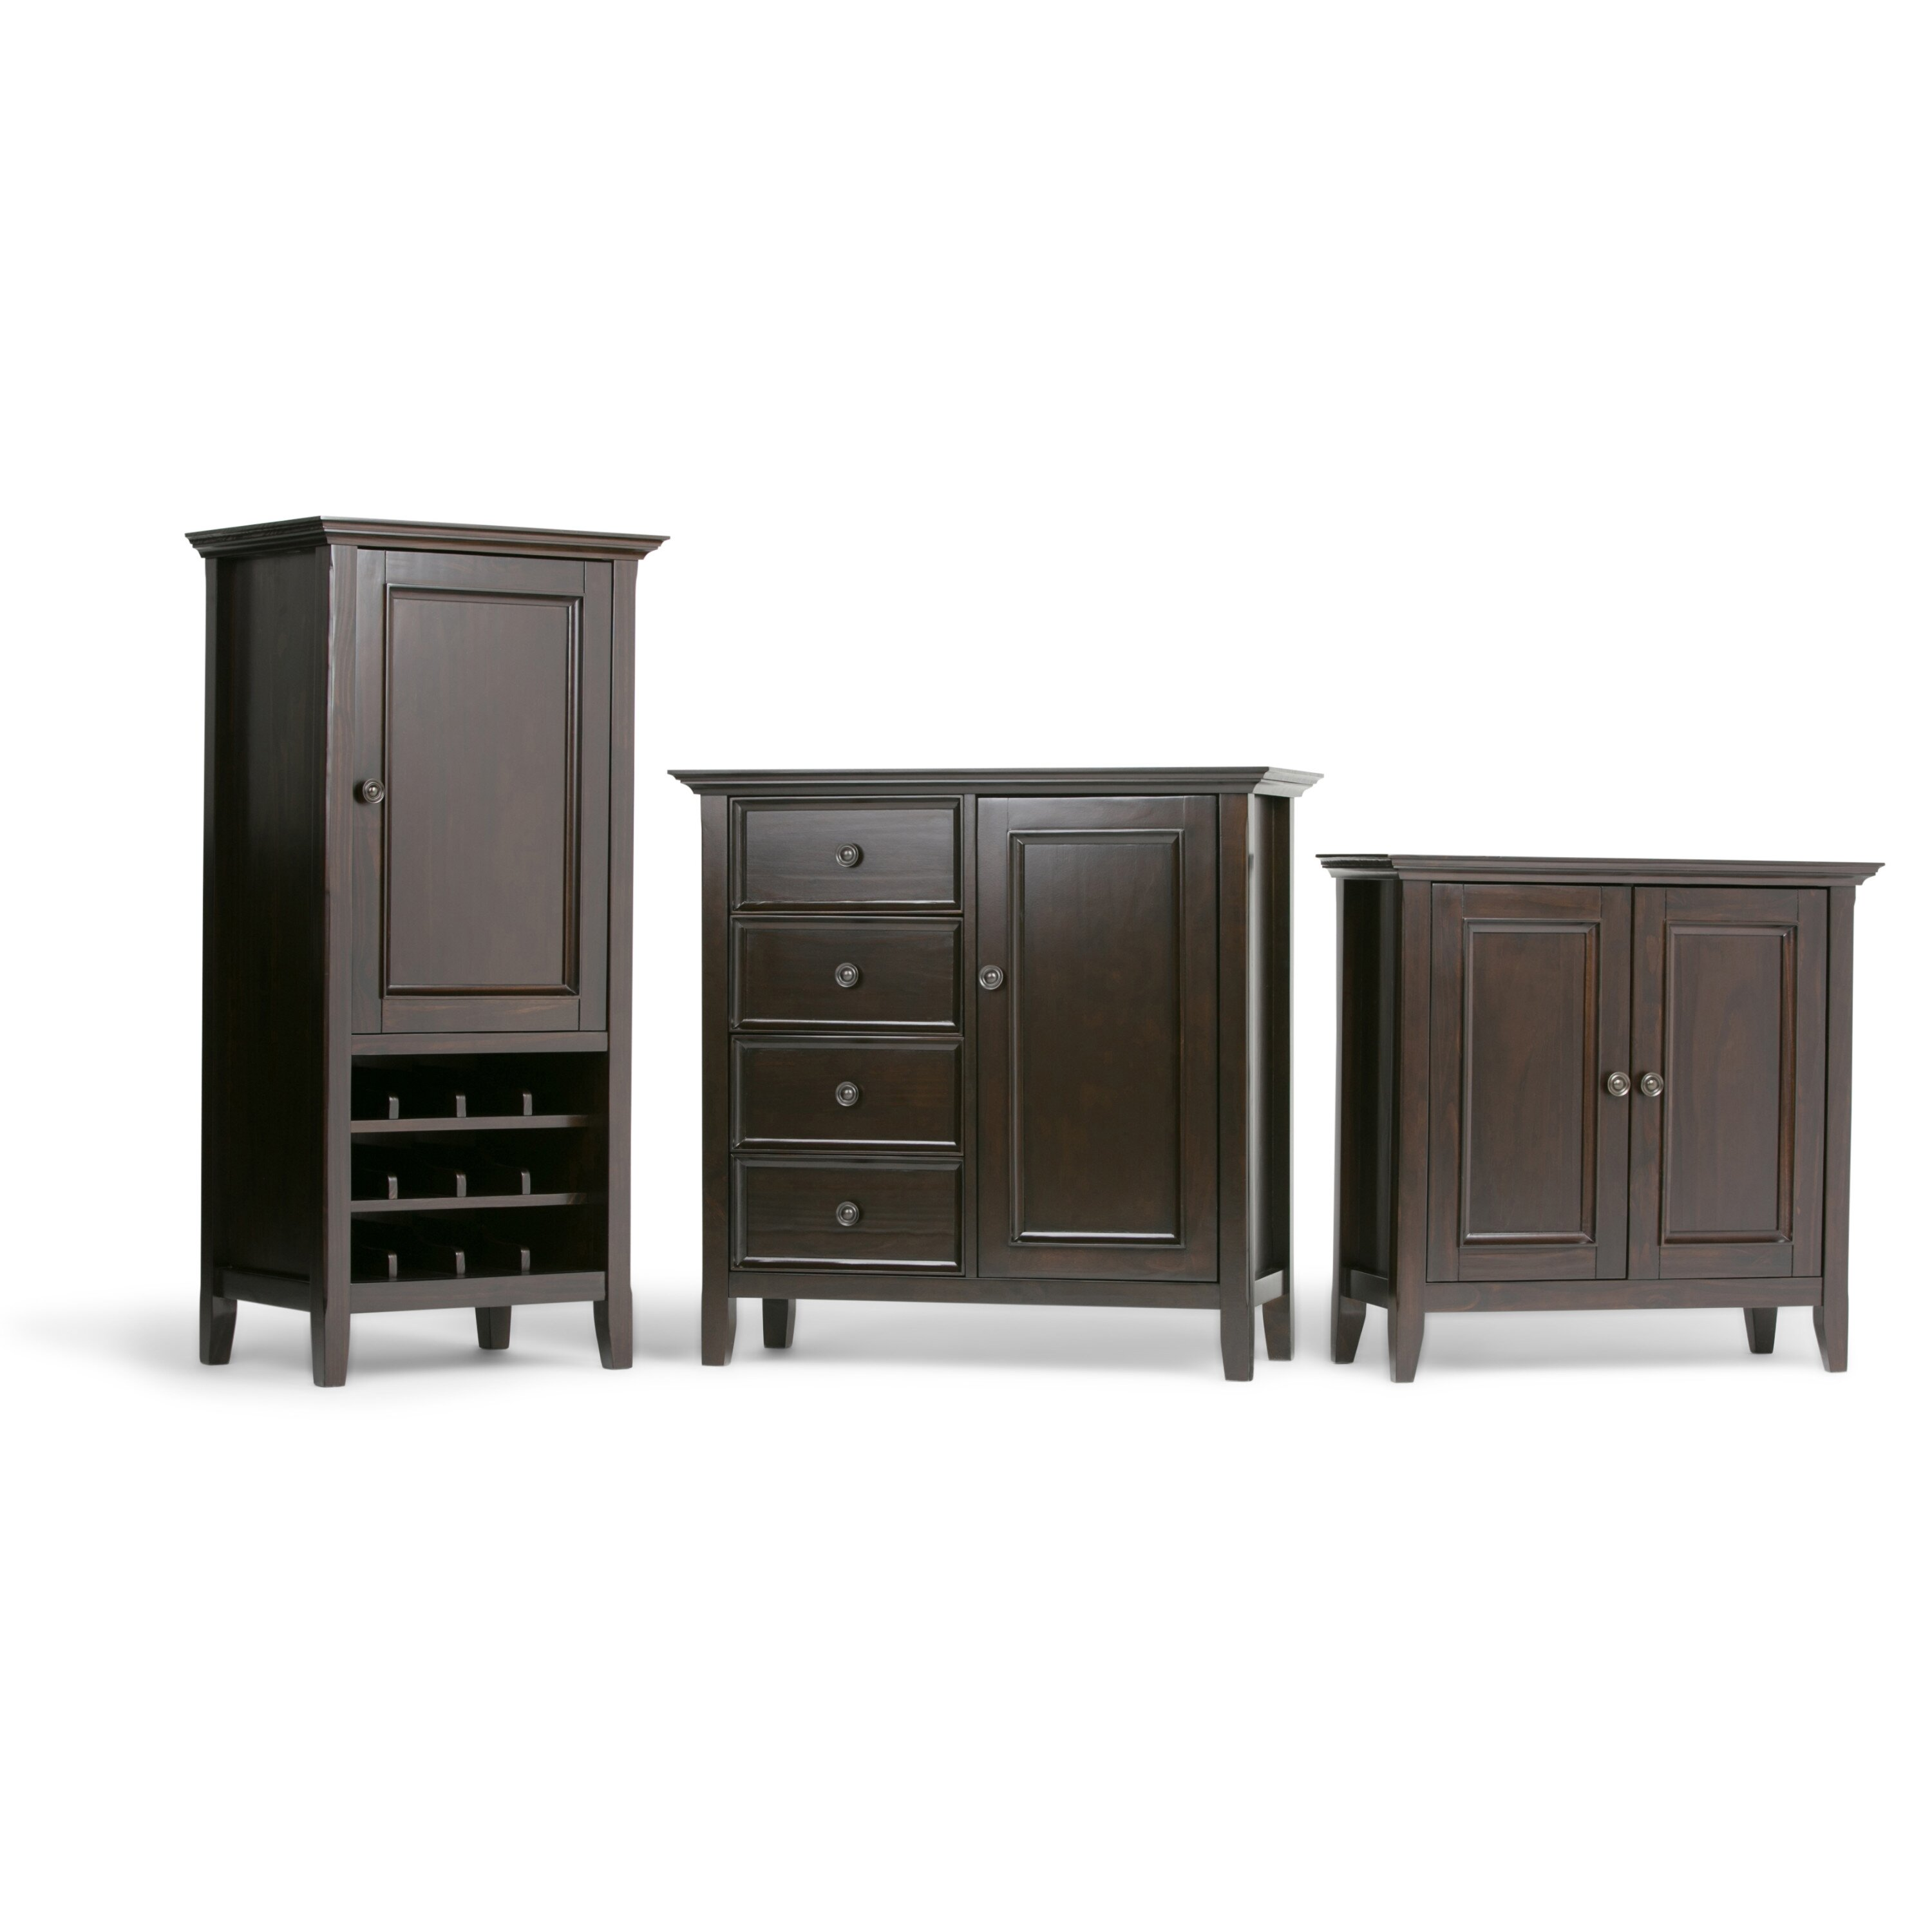 Simpli home amherst accent cabinet reviews wayfair for Accent housing